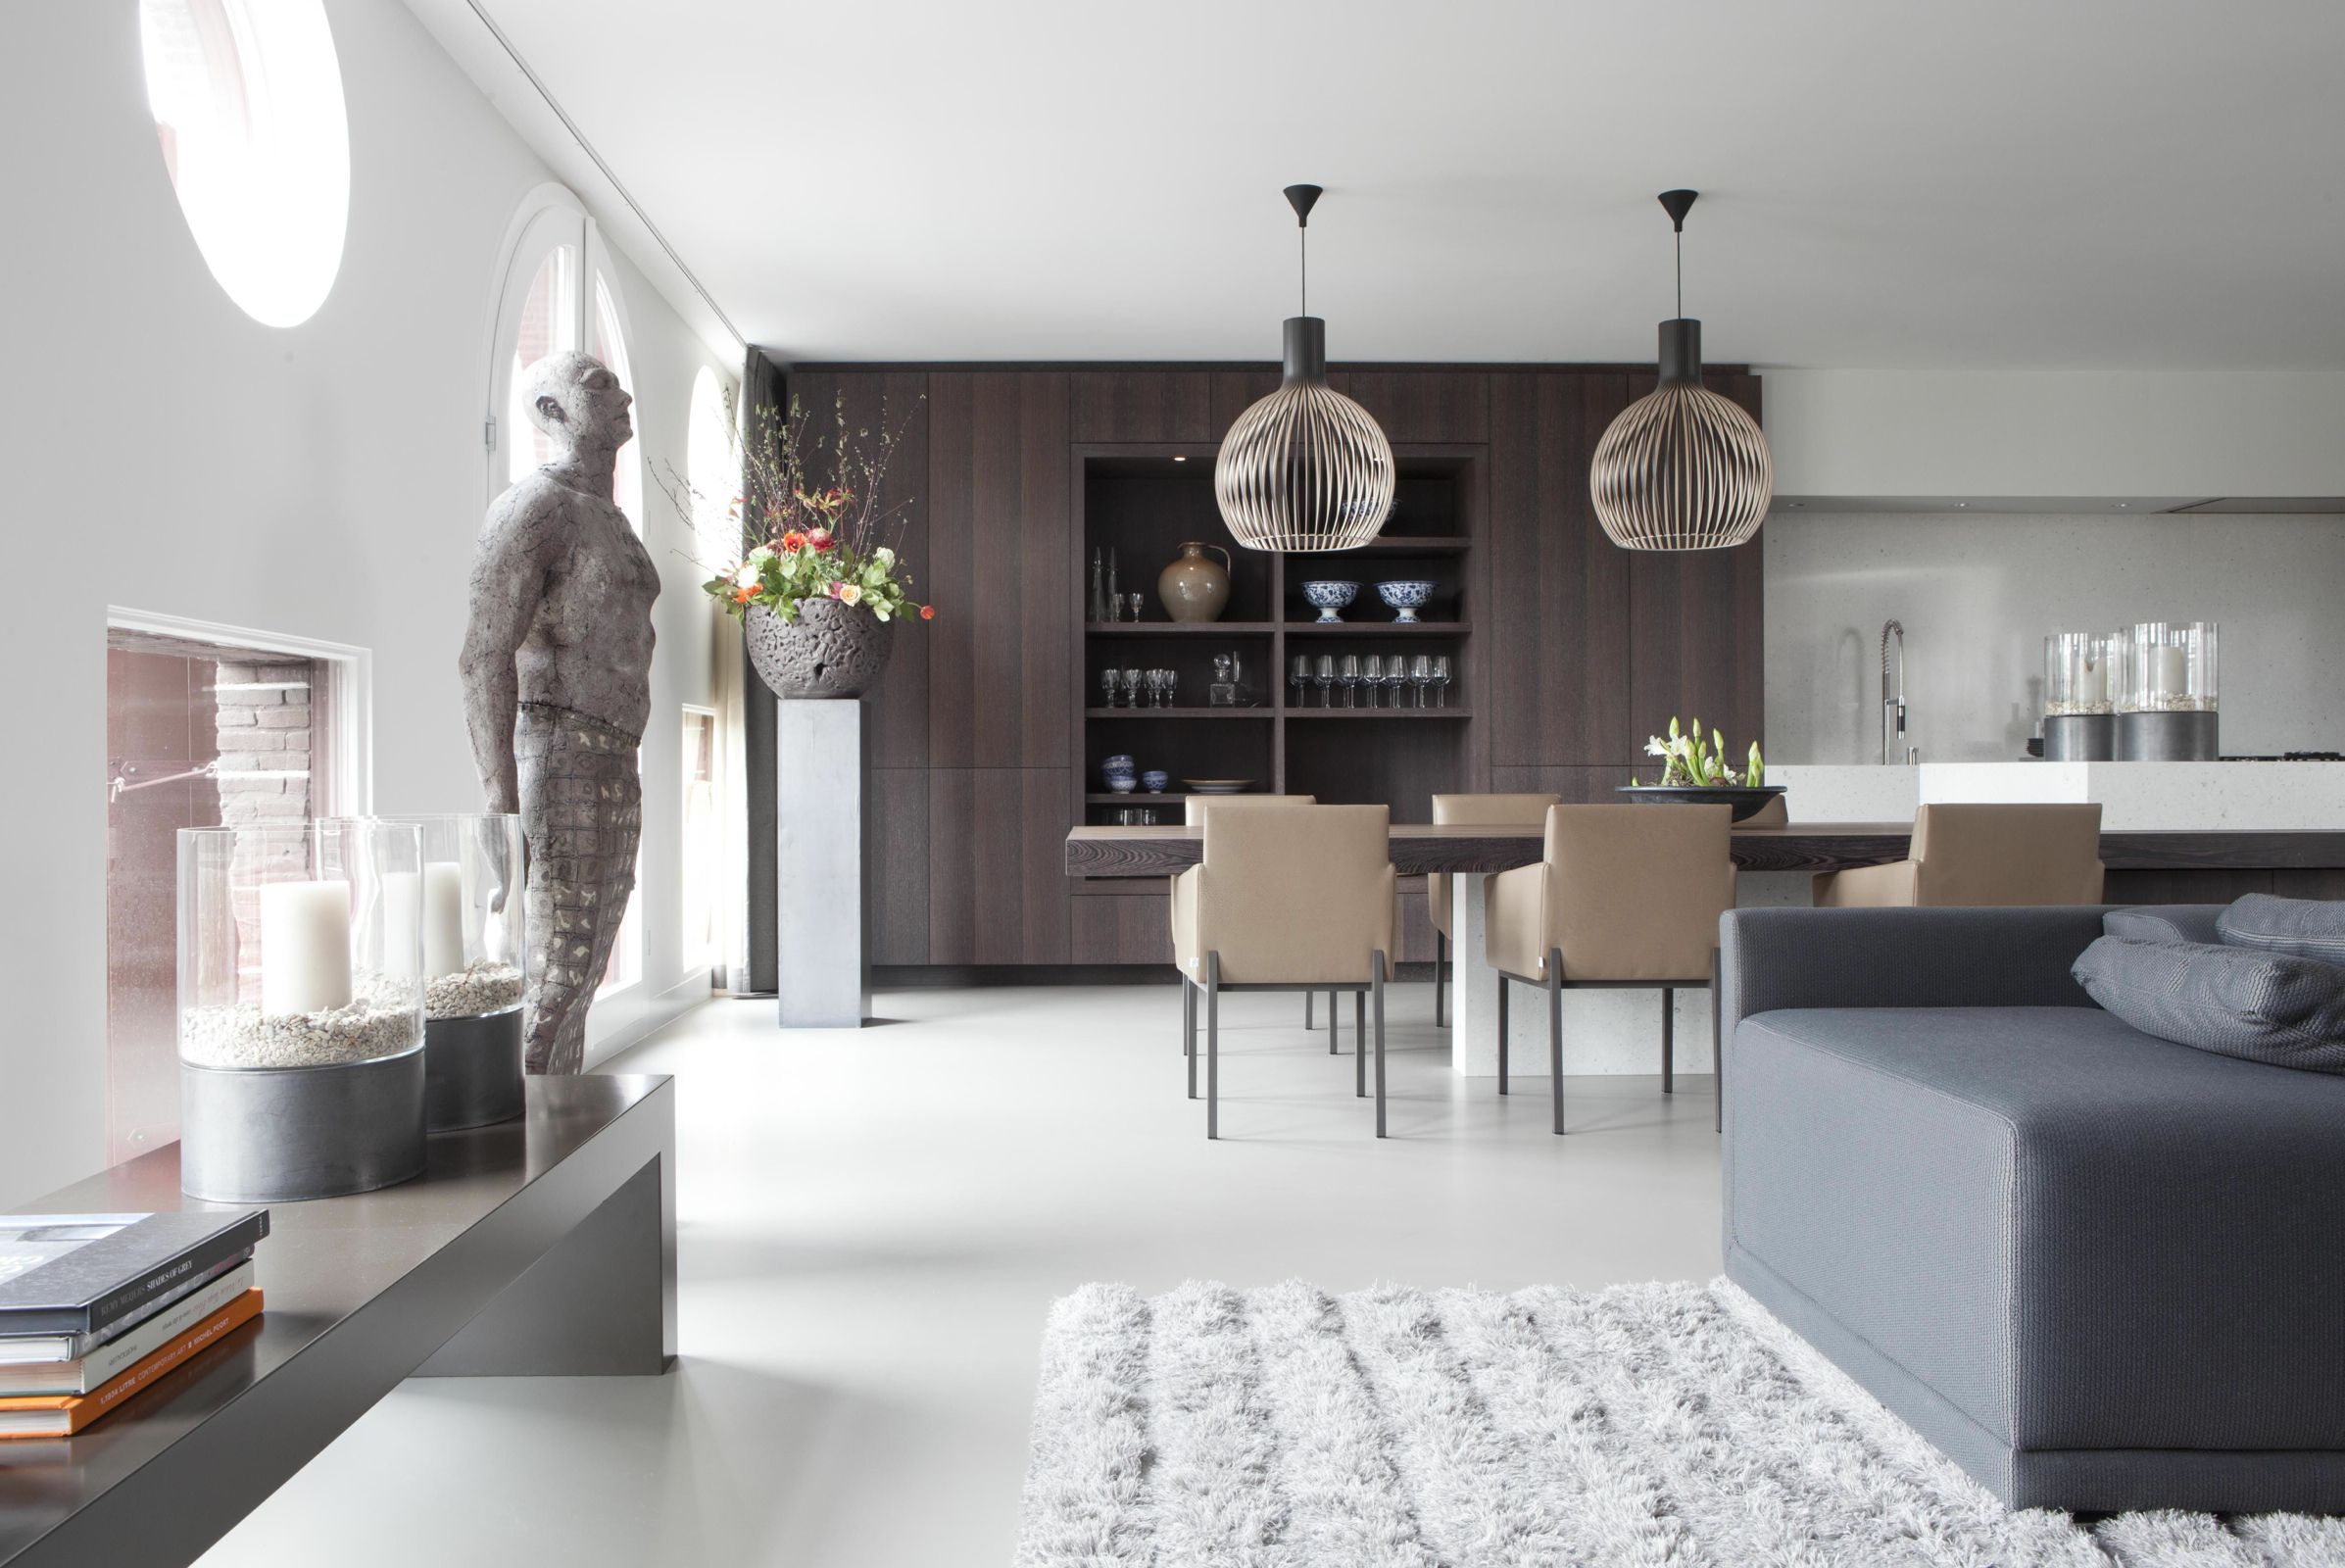 remy meijers interieurarchitectuur droomhuis rtl woonmagazinepenthouse amsterdam furniture e